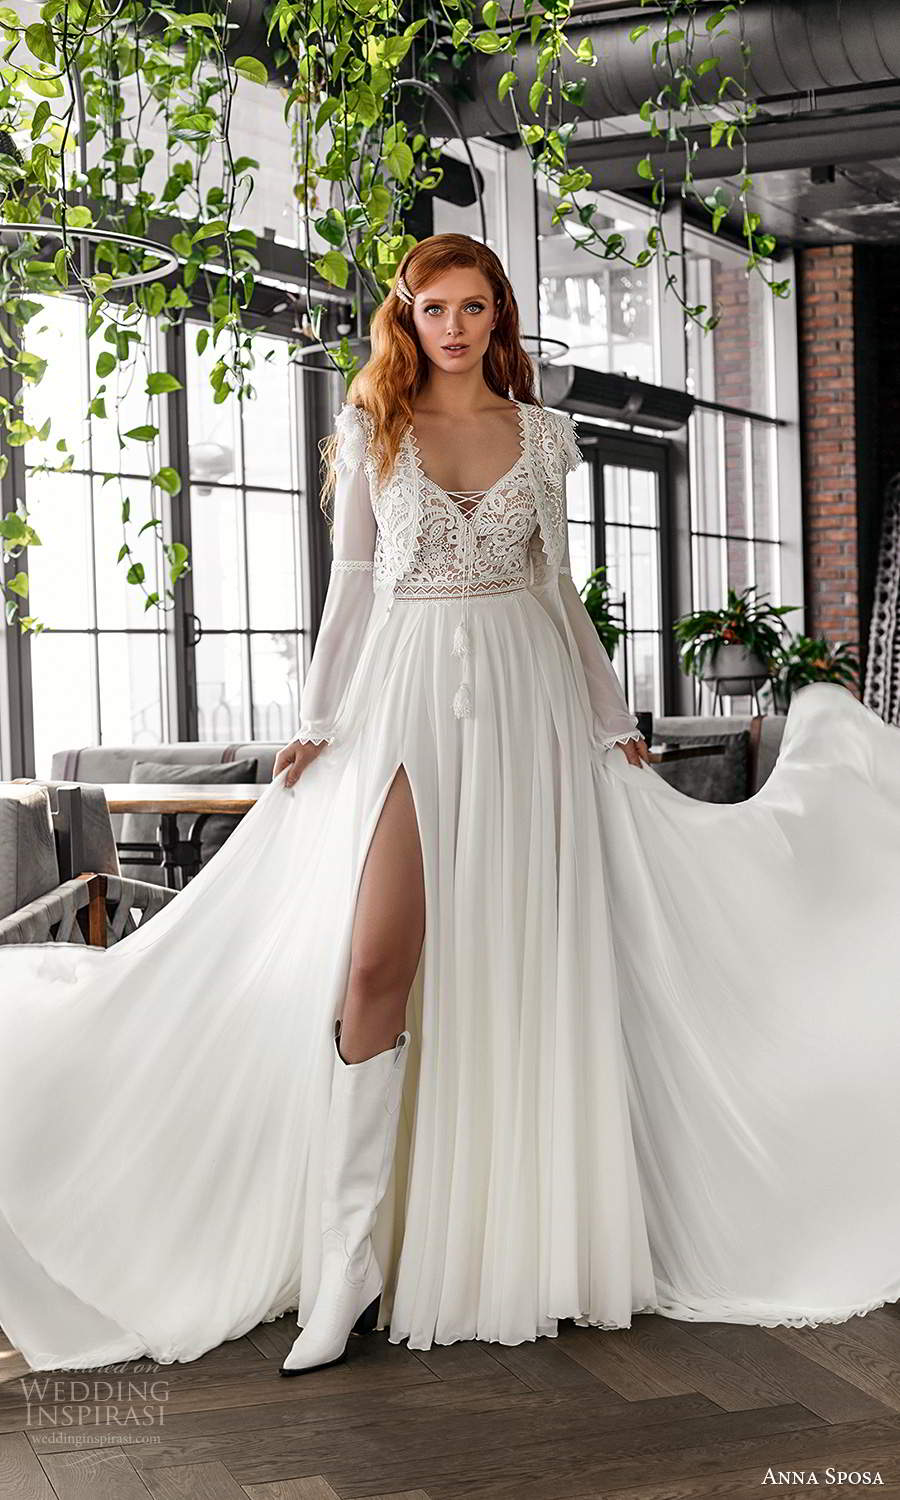 anna sposa 2021 boho bridal sleeveless straps sweetheart neckline embellished lace bodice a line wedding dress slit skirt boho chic long sleeve jacket (22) mv